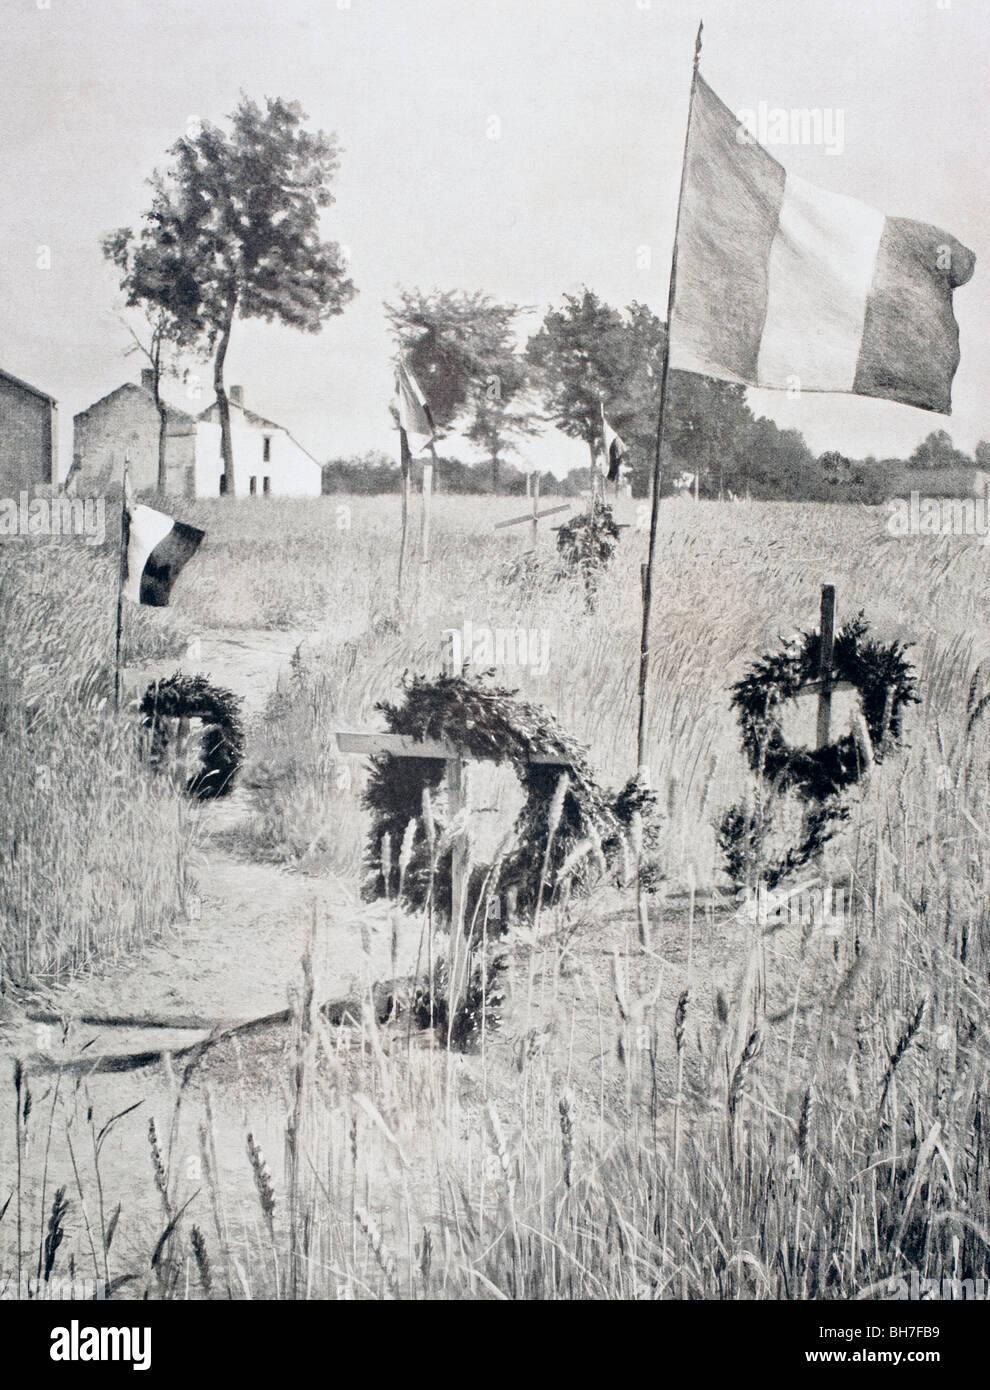 Graves in the wheatfields on the Western Front during the First World War. - Stock Image